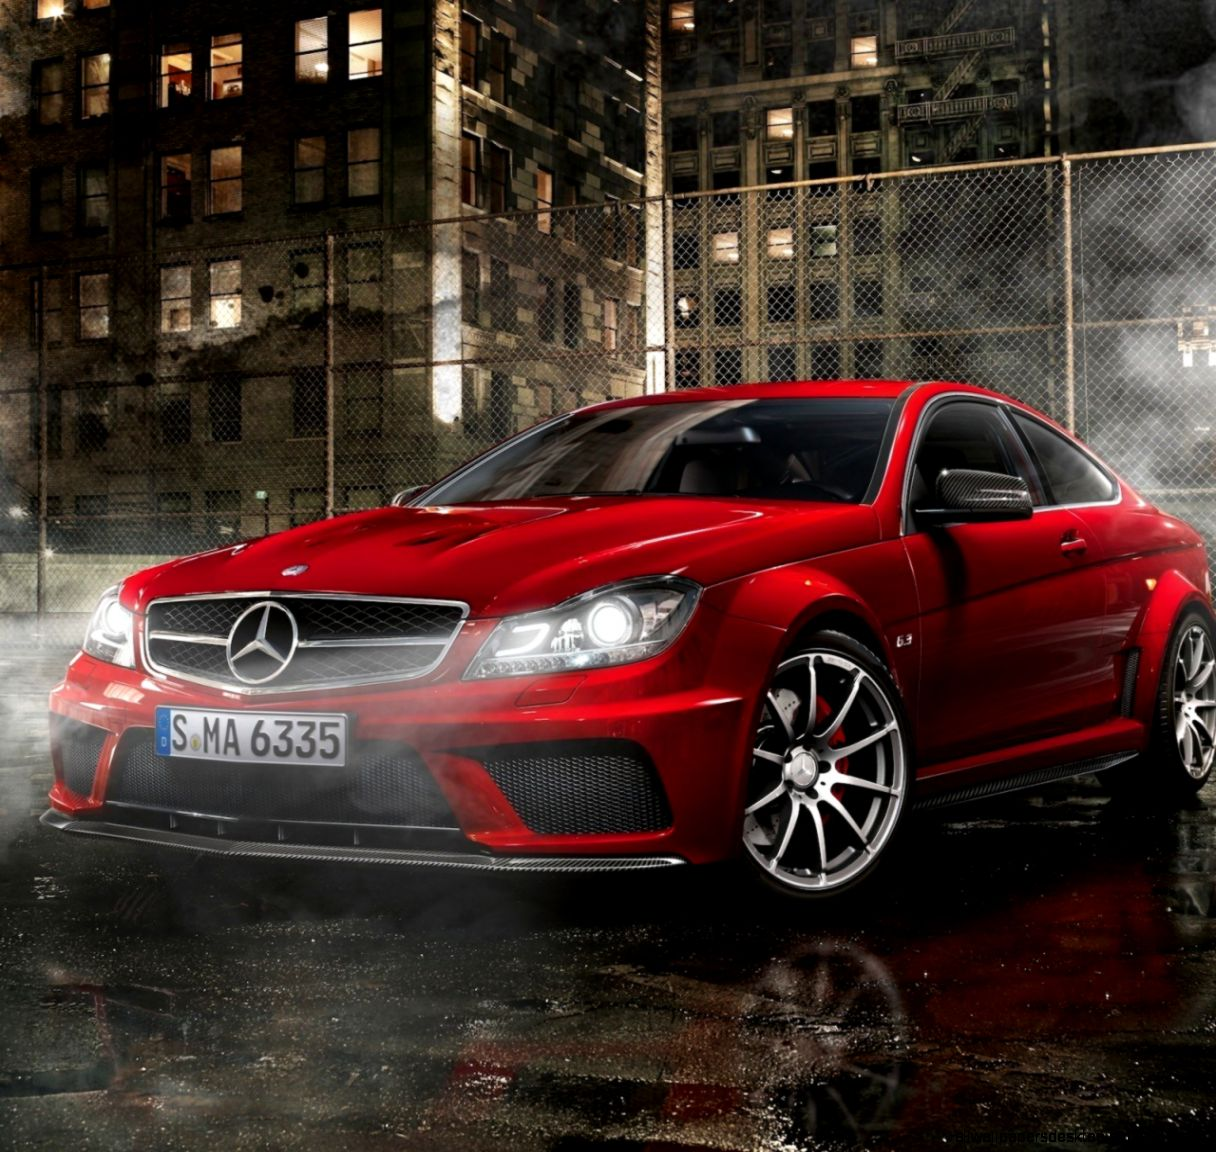 small resolution of  mercedes cls amg hd wallpaper mercedes benz c63 amg night street parking hd wallpaper